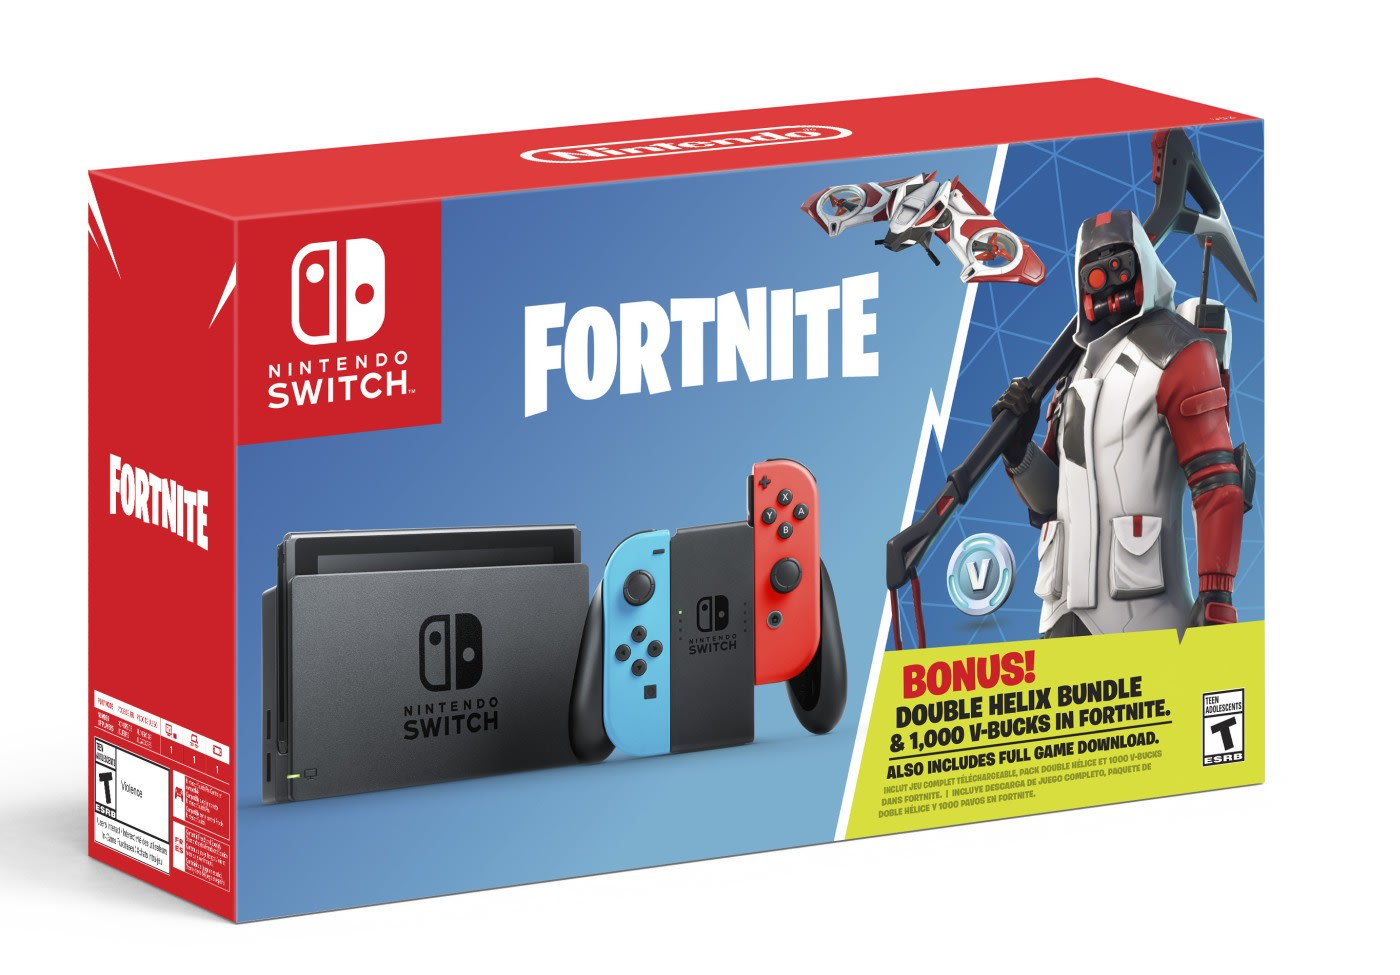 Fortnite' Switch bundle arrives October 5th with in-game perks